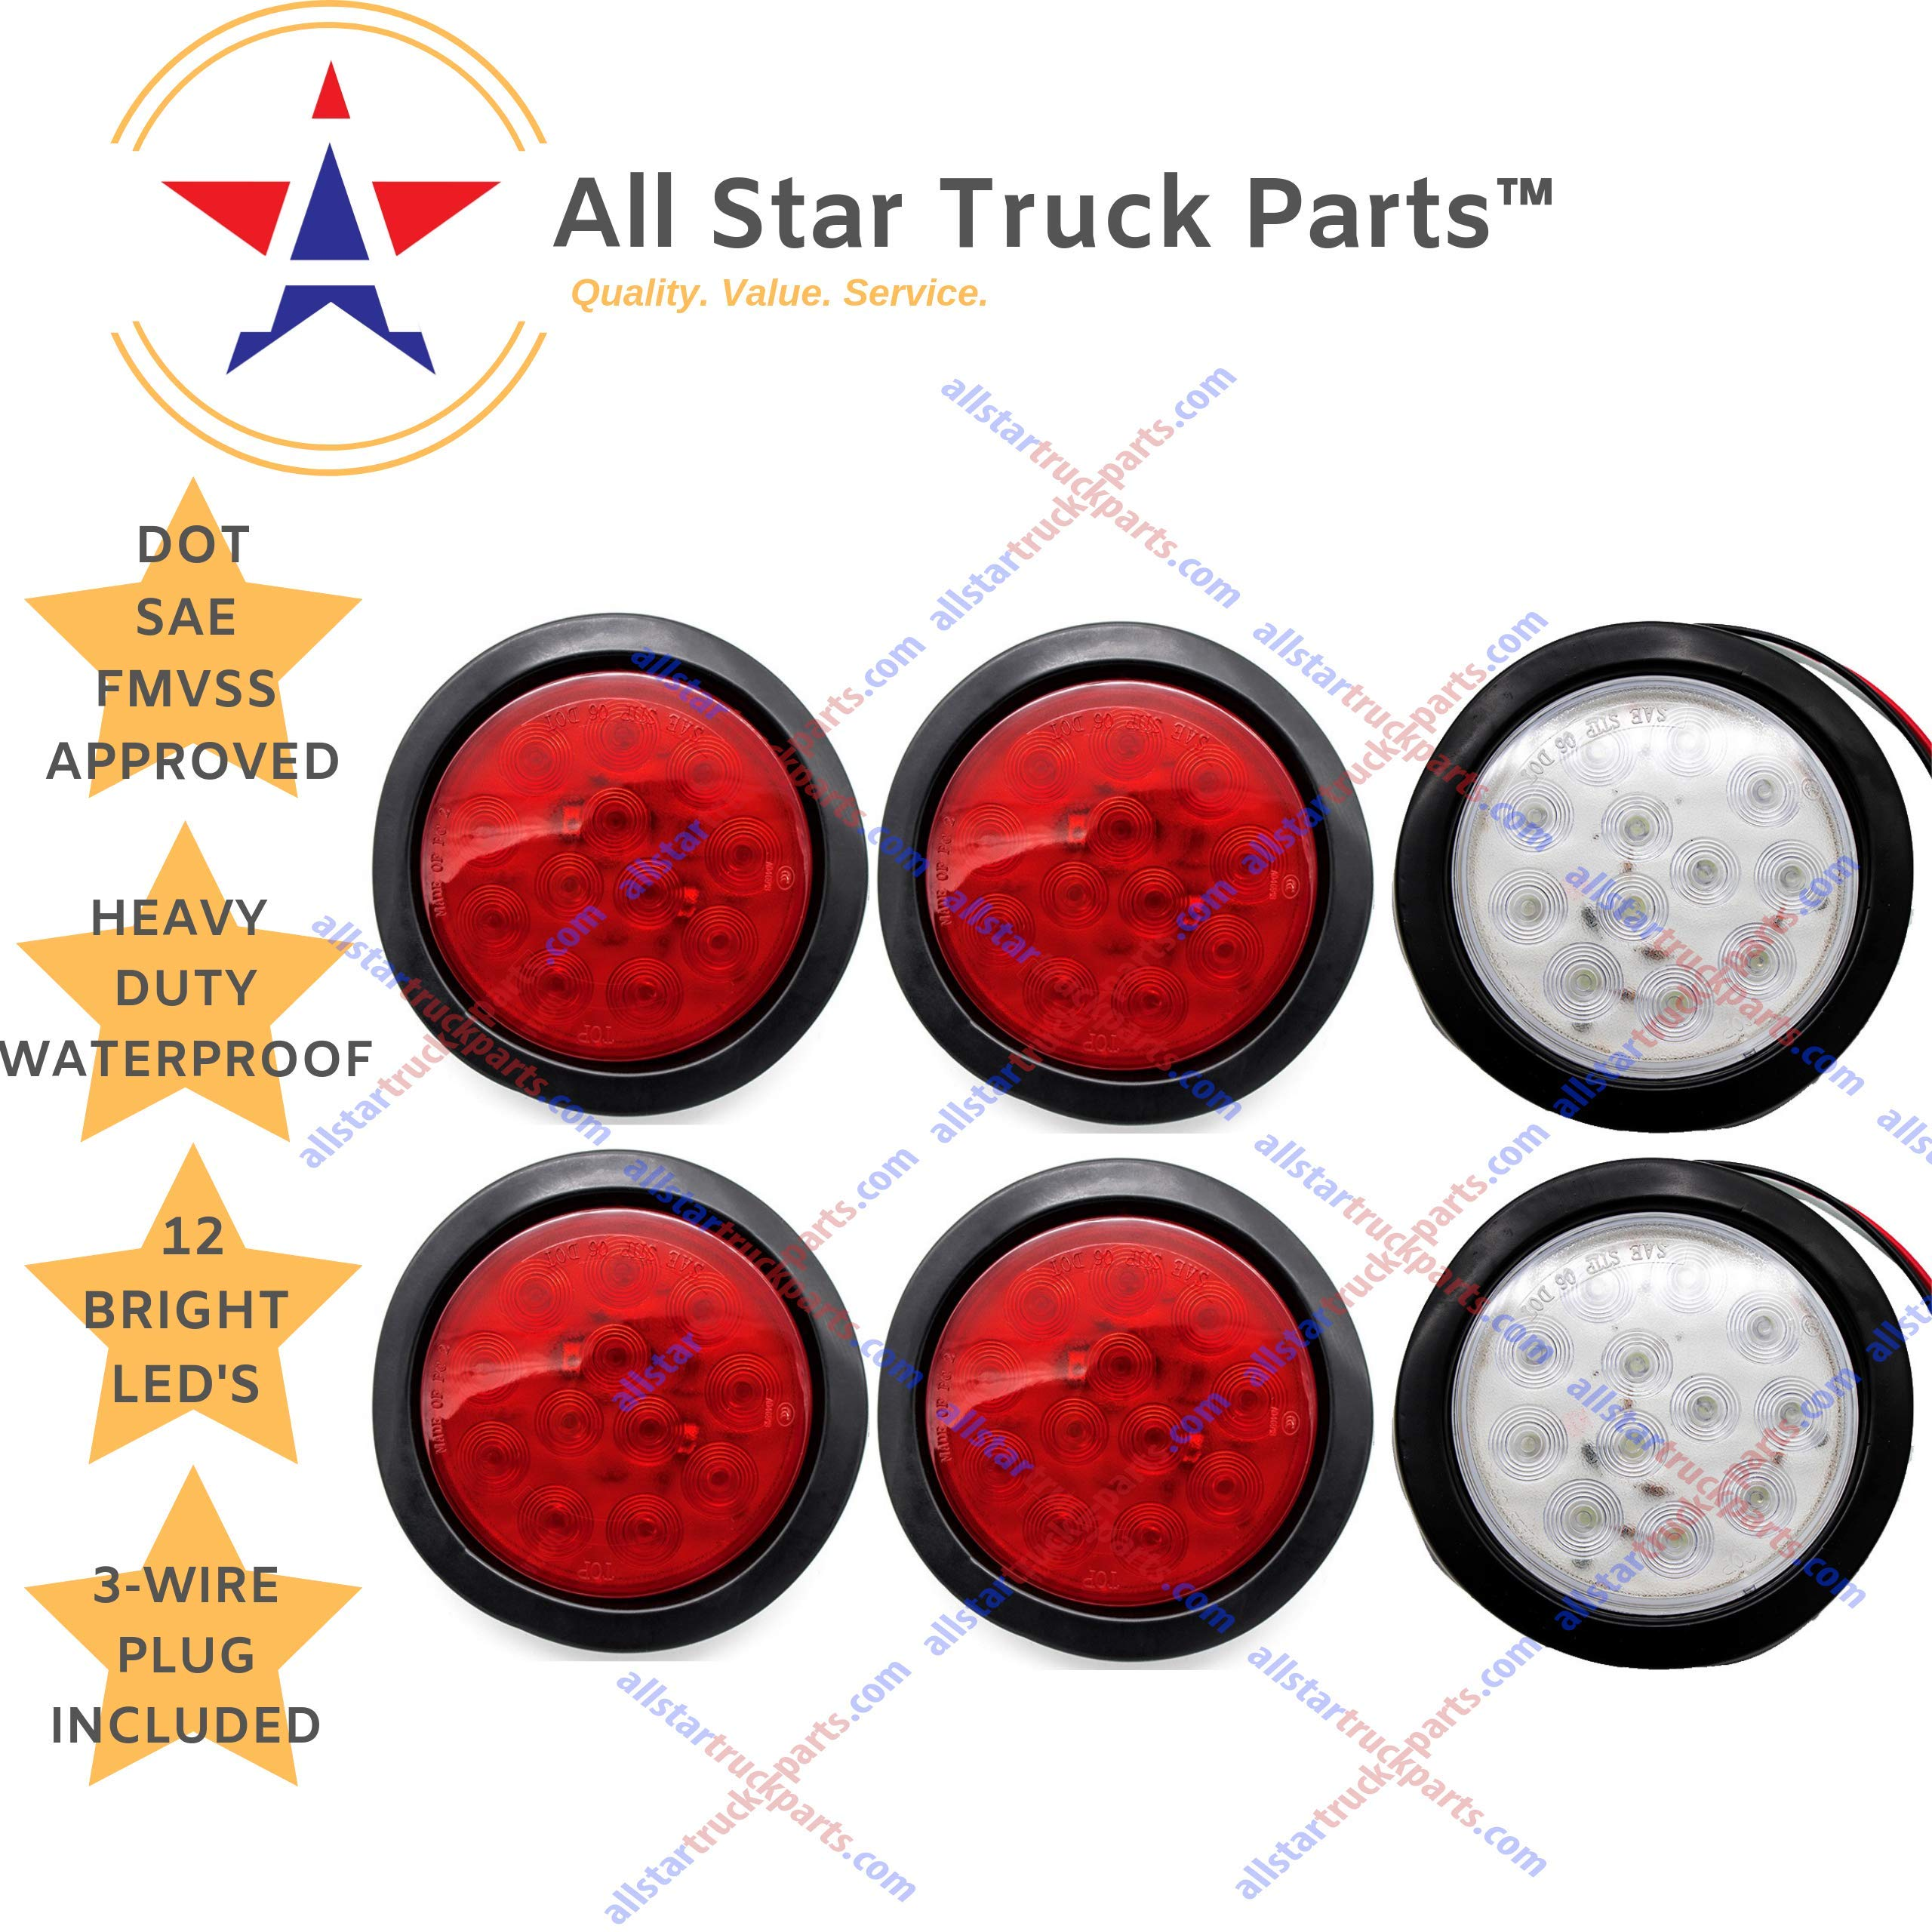 [ALL STAR TRUCK PARTS] 4'' Inch White and Red 12 LED Round Stop/Turn/Tail/Reverse/Backup Trailer Light Kit with 3 wire Pigtail Plug & Grommet (Qty 2 Red + Qty 2 White) (Mix, 4 Red + 2 White) by All Star Truck Parts